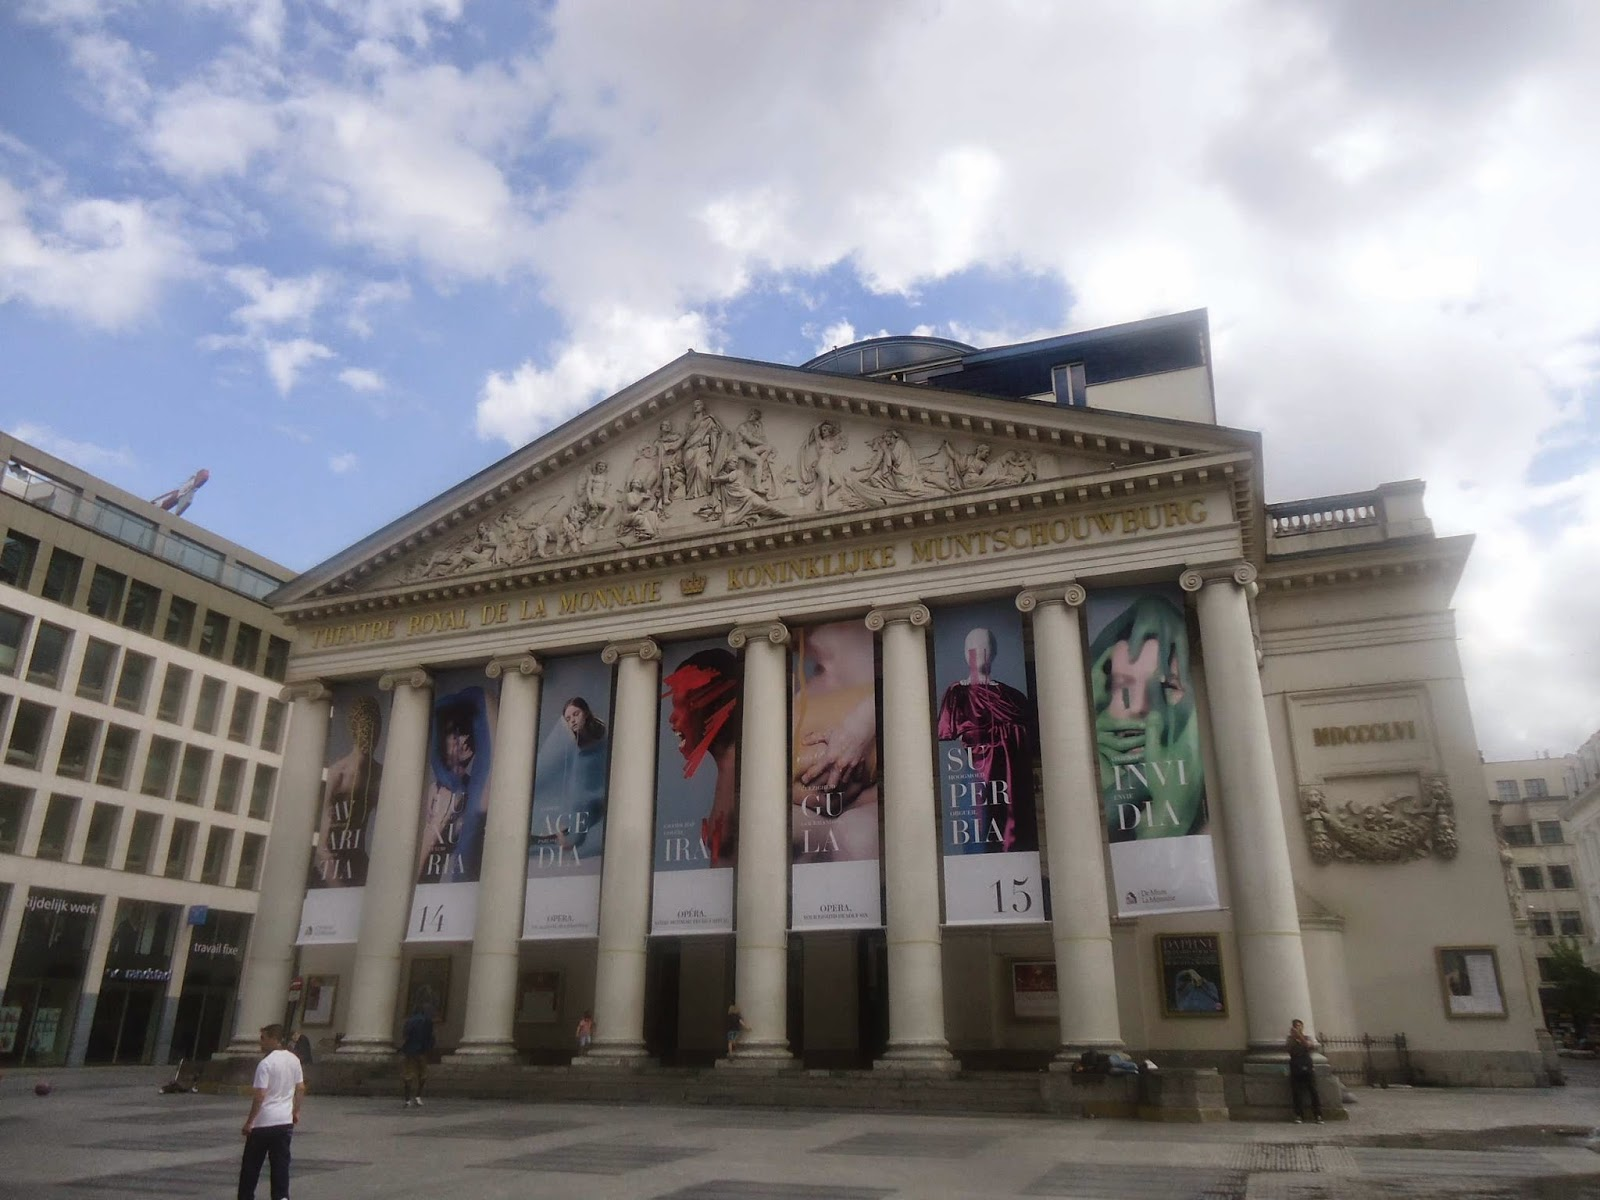 Theatre la monnaie in brussels belgium history travel